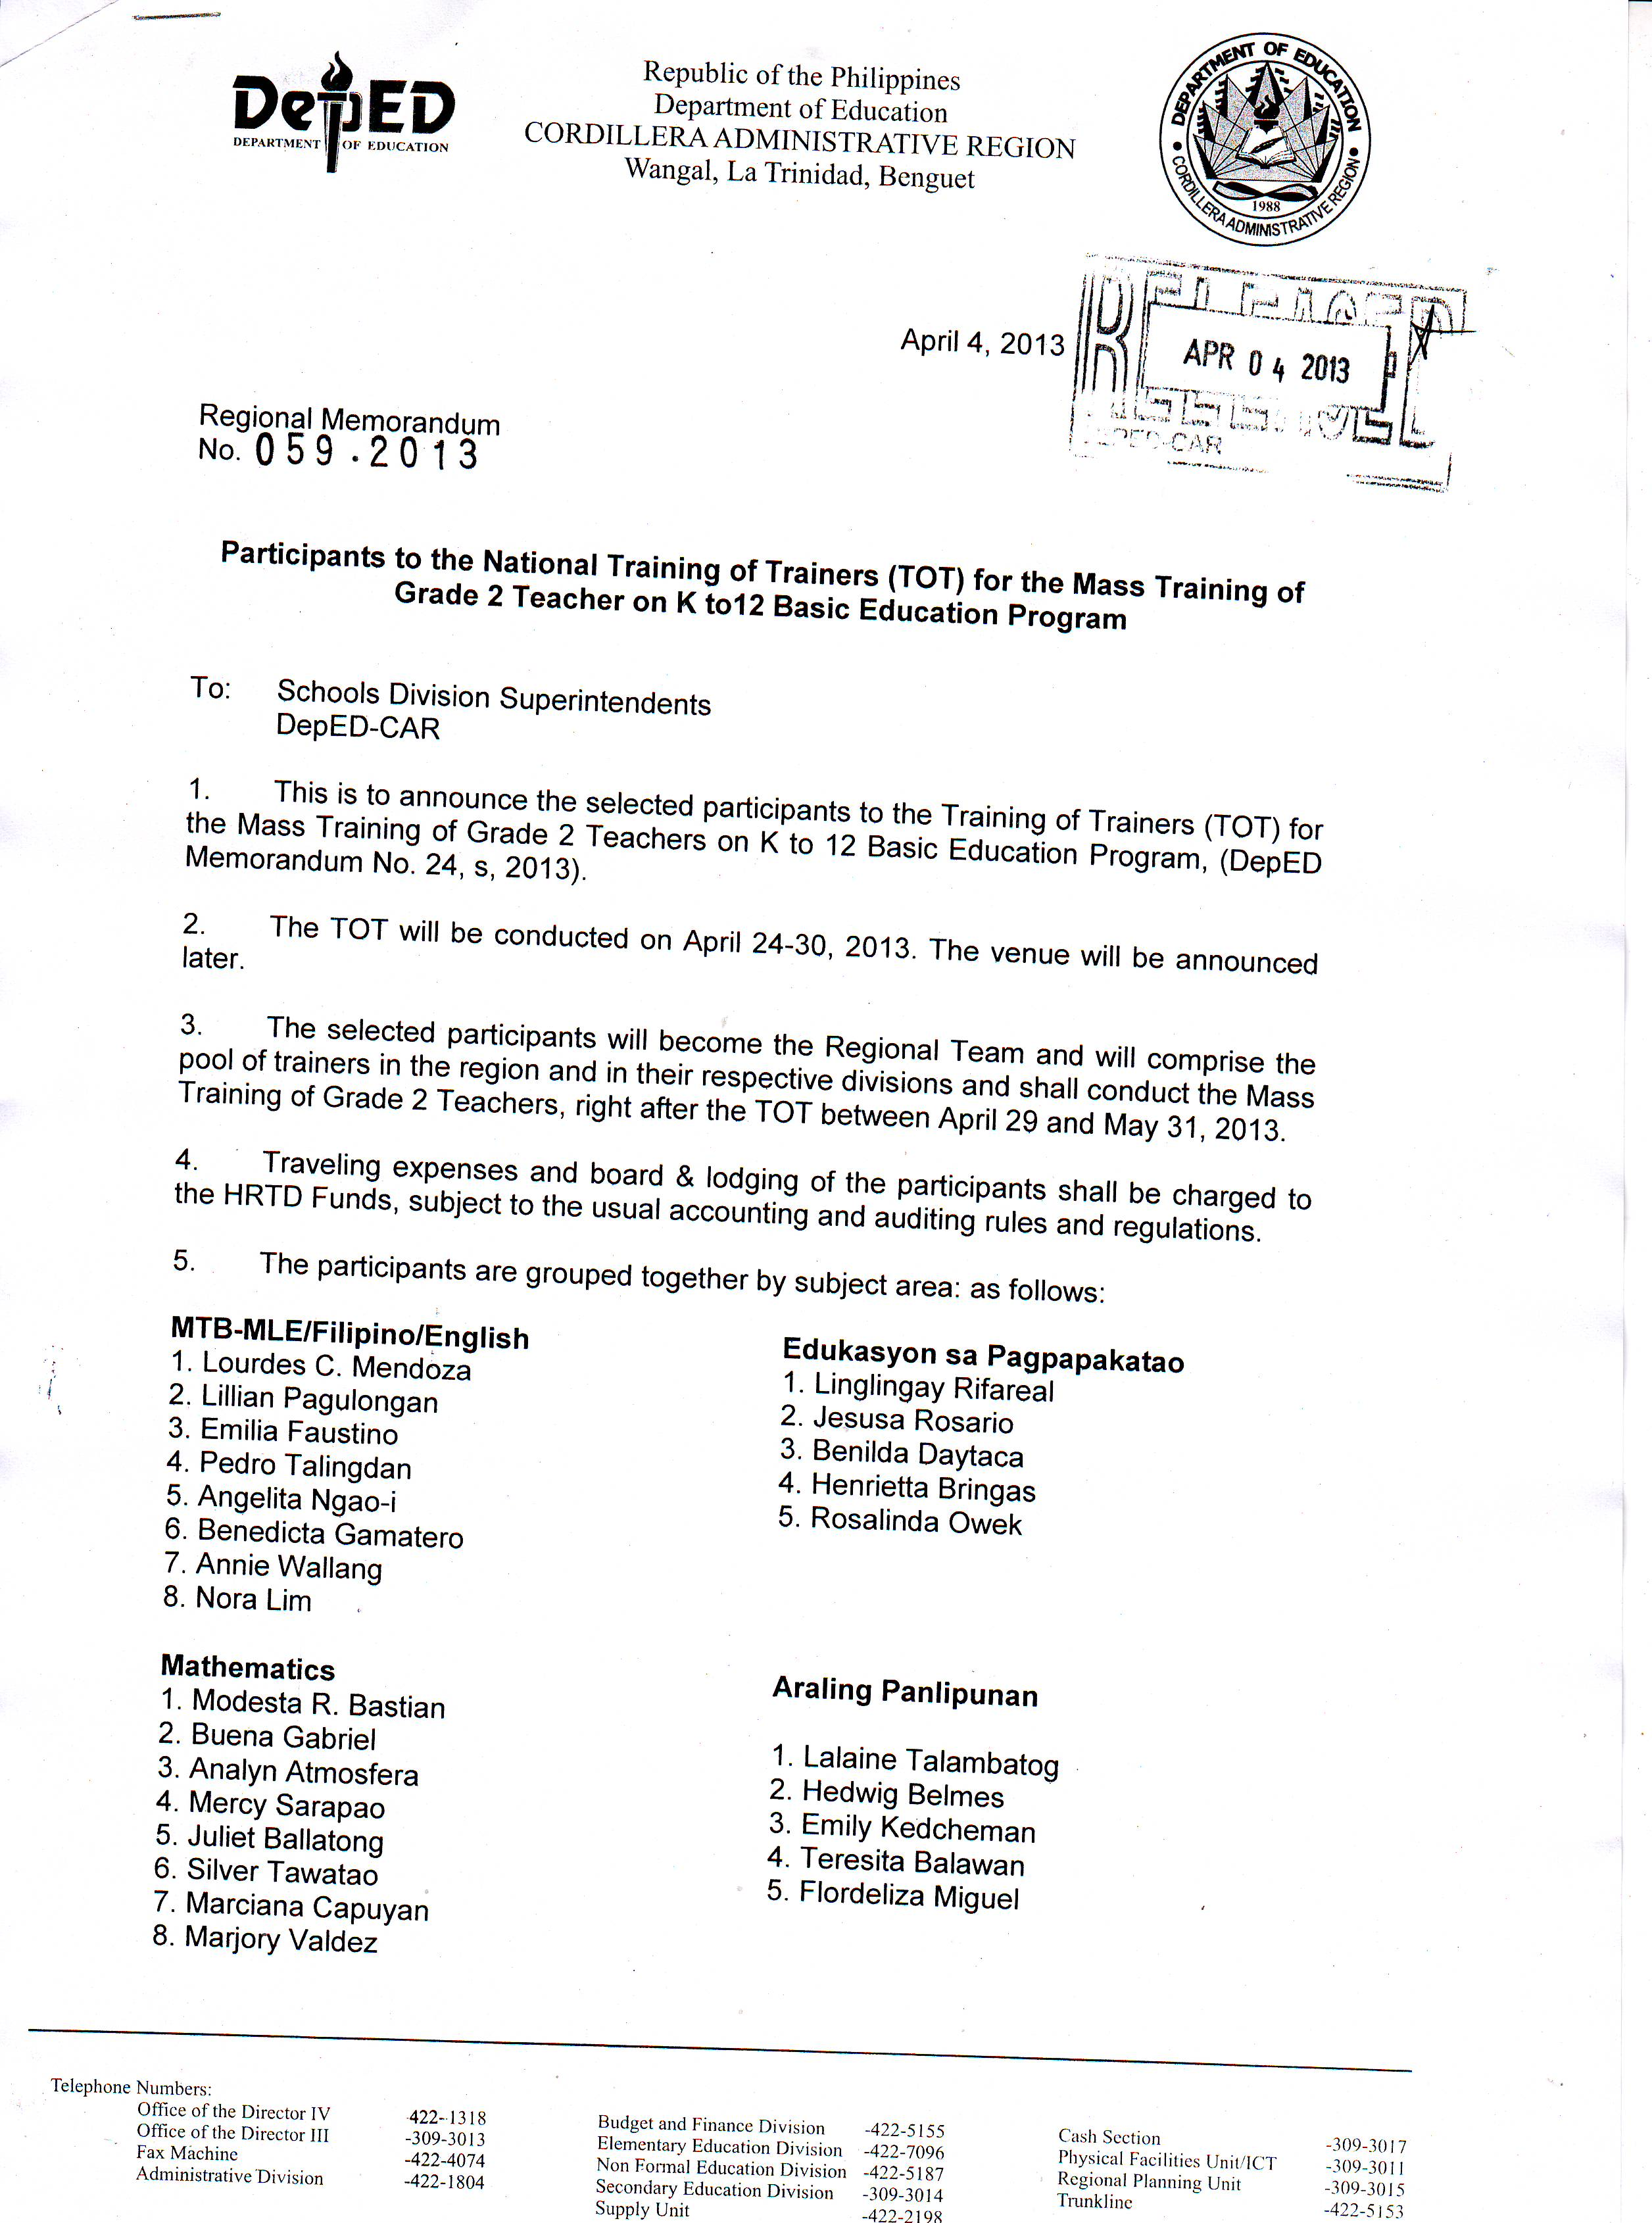 Regional Memo No. 59 s, 2013 Participants to the National Training